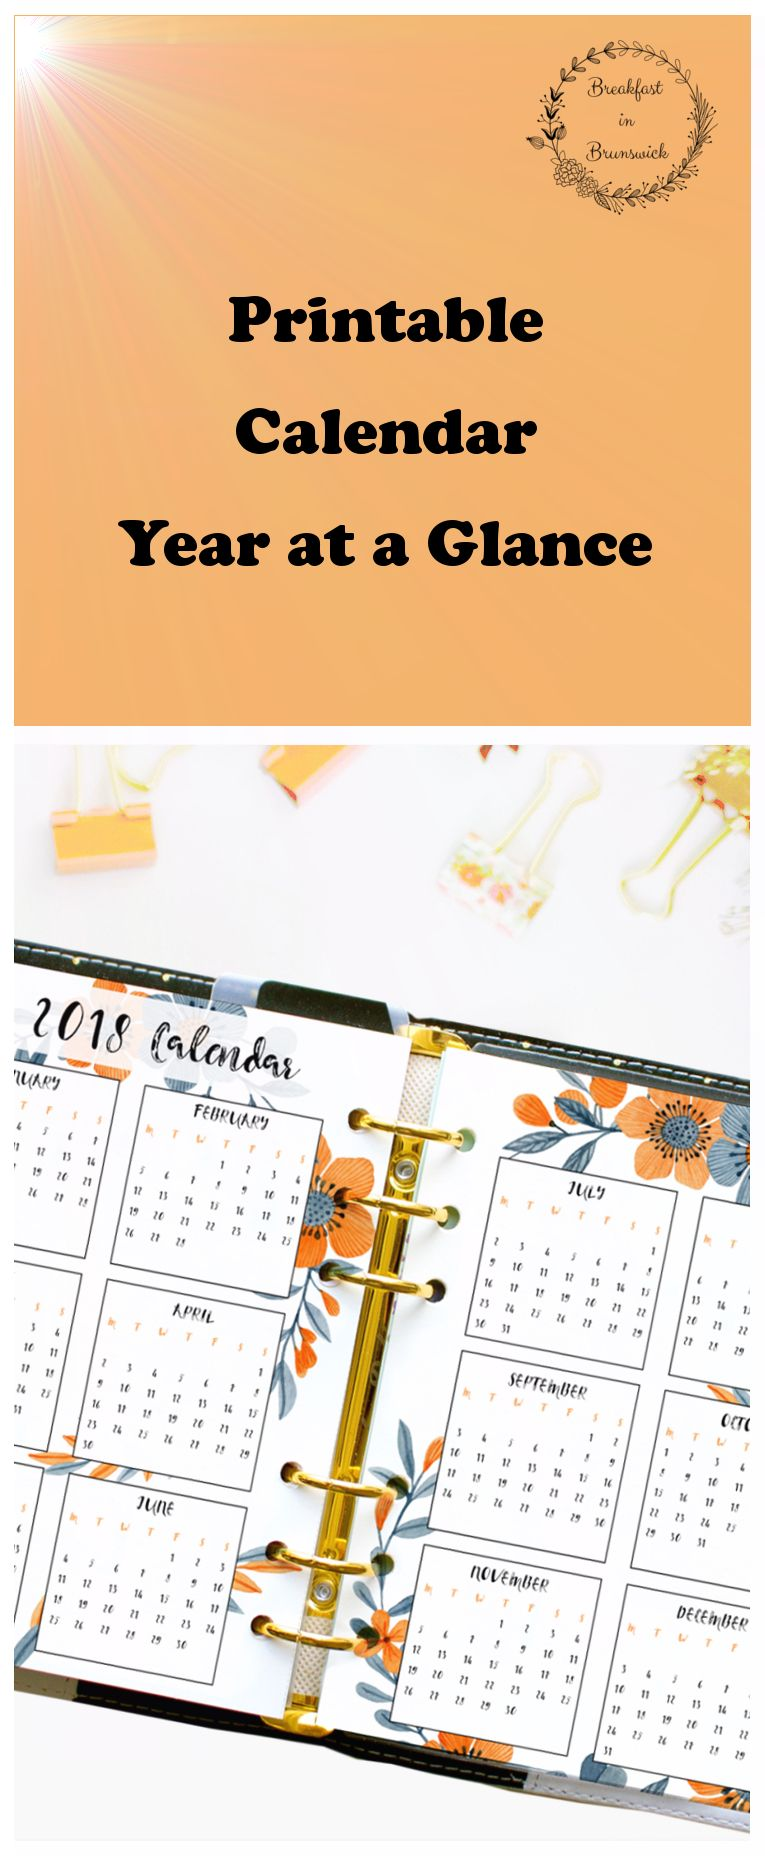 year at a glance 2019 printable a5 planner calendar year on two